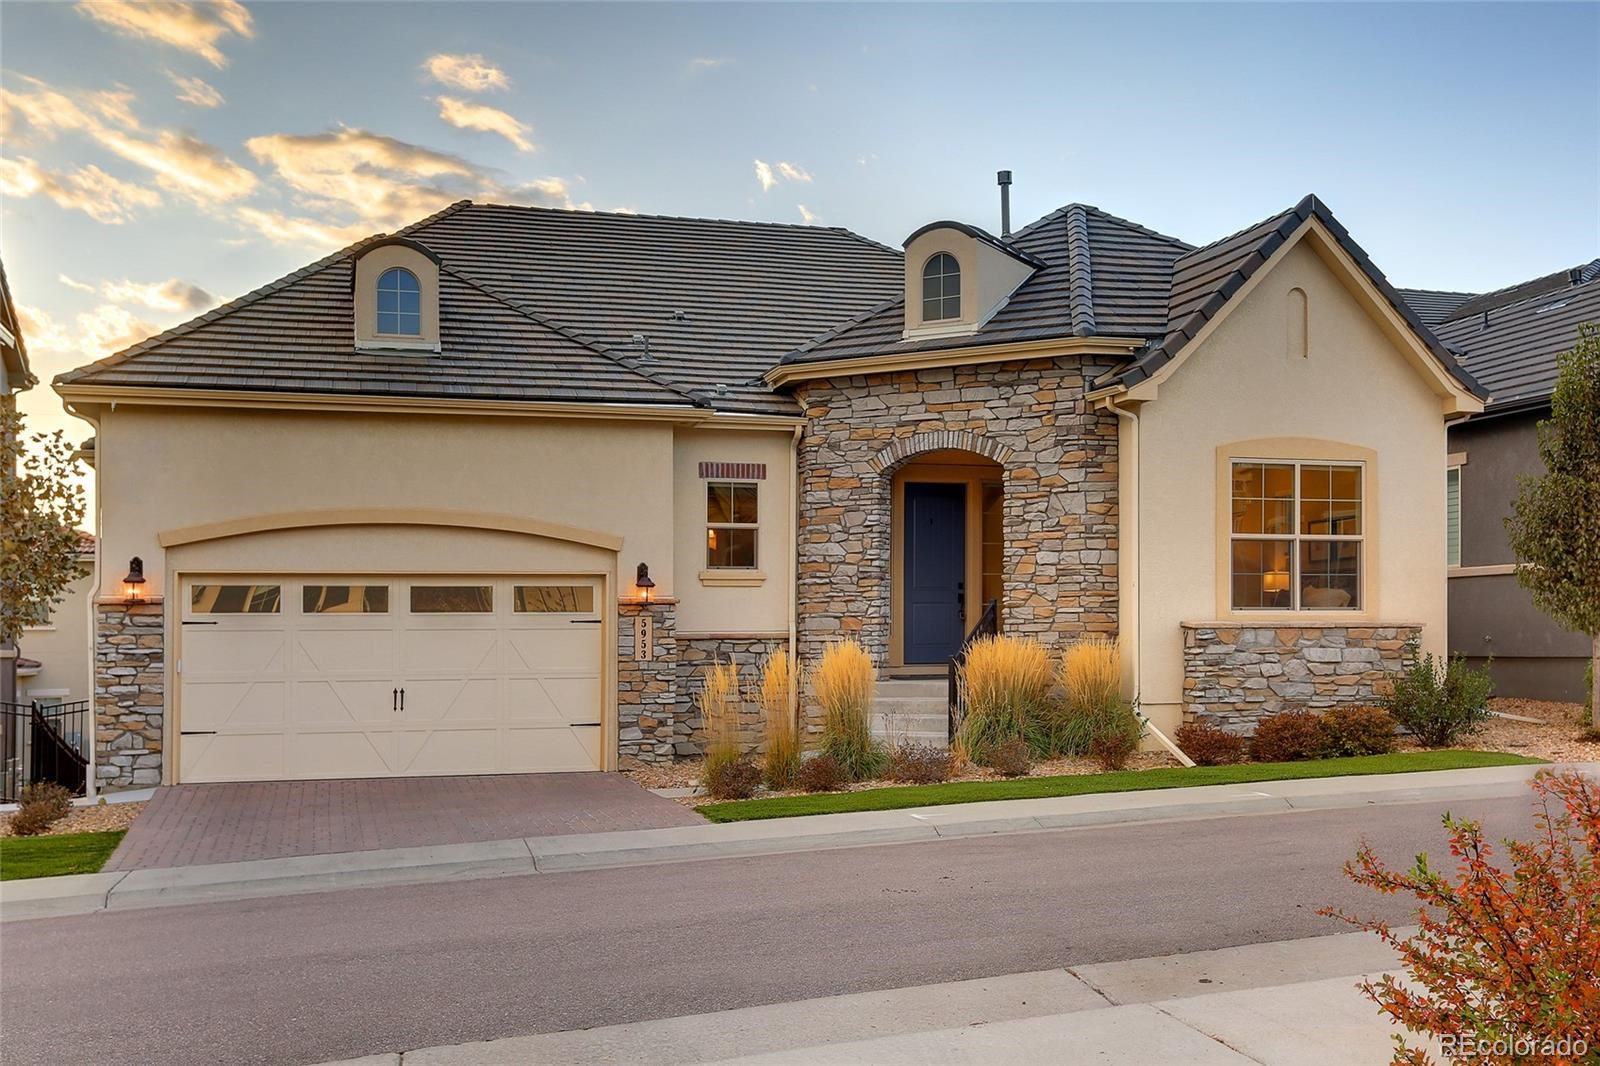 MLS# 6770948 - 1 - 5953 S Olive Circle, Centennial, CO 80111